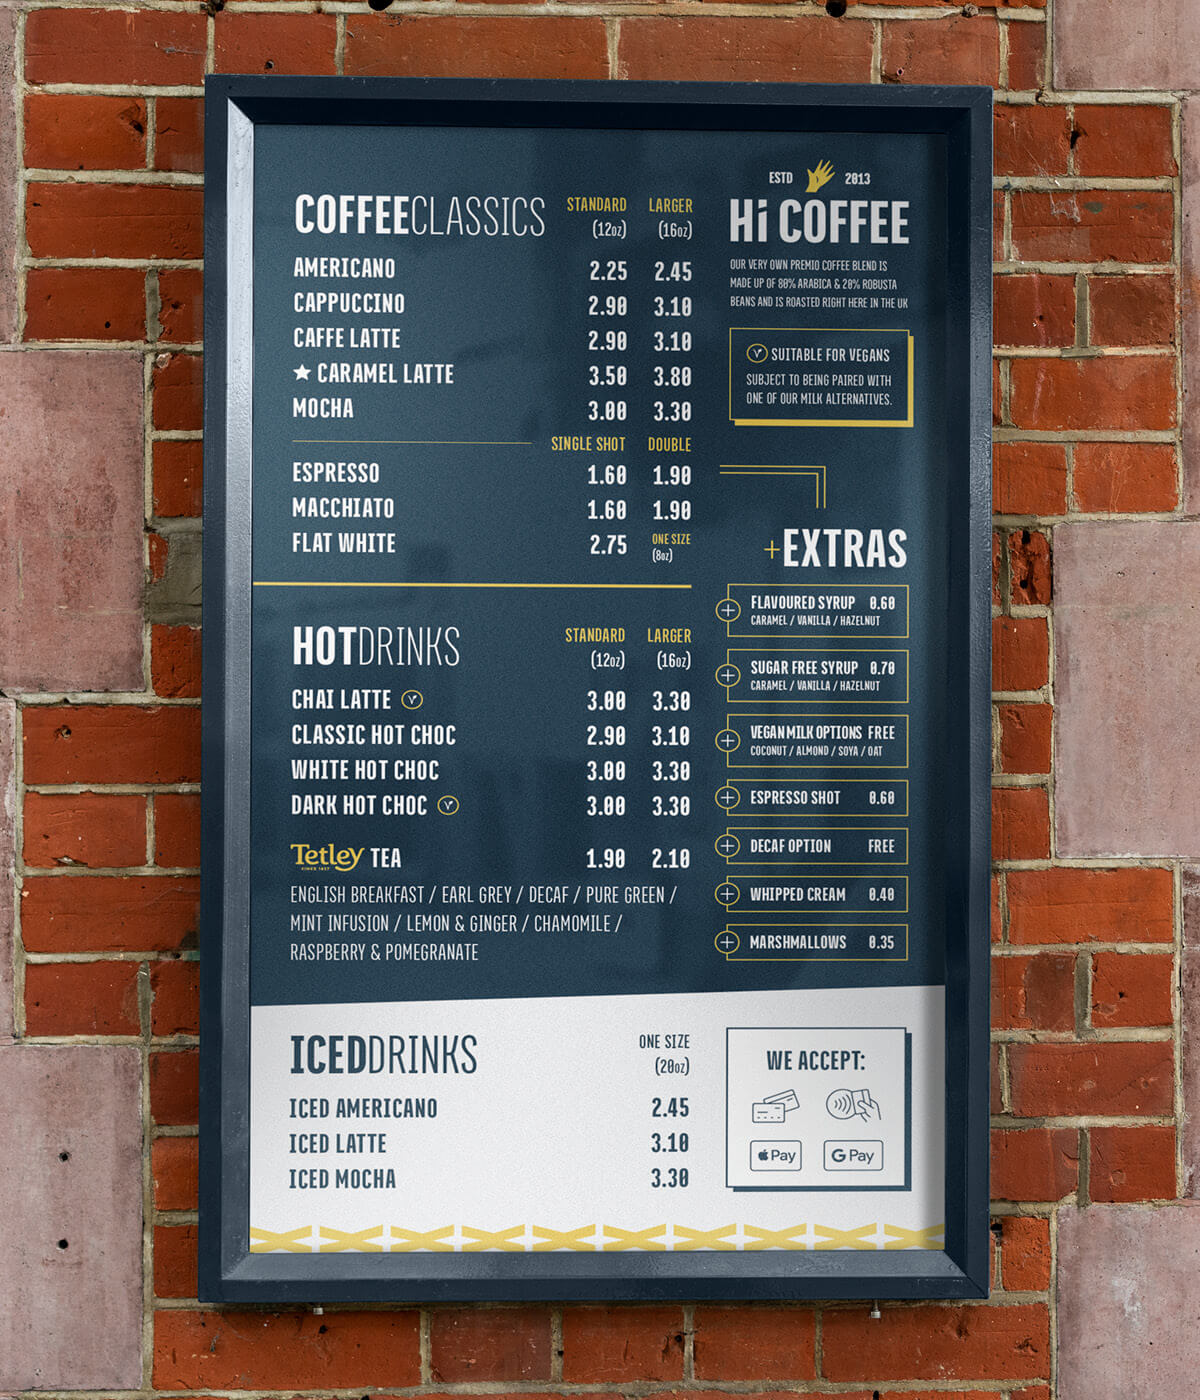 Hi Coffee menu design